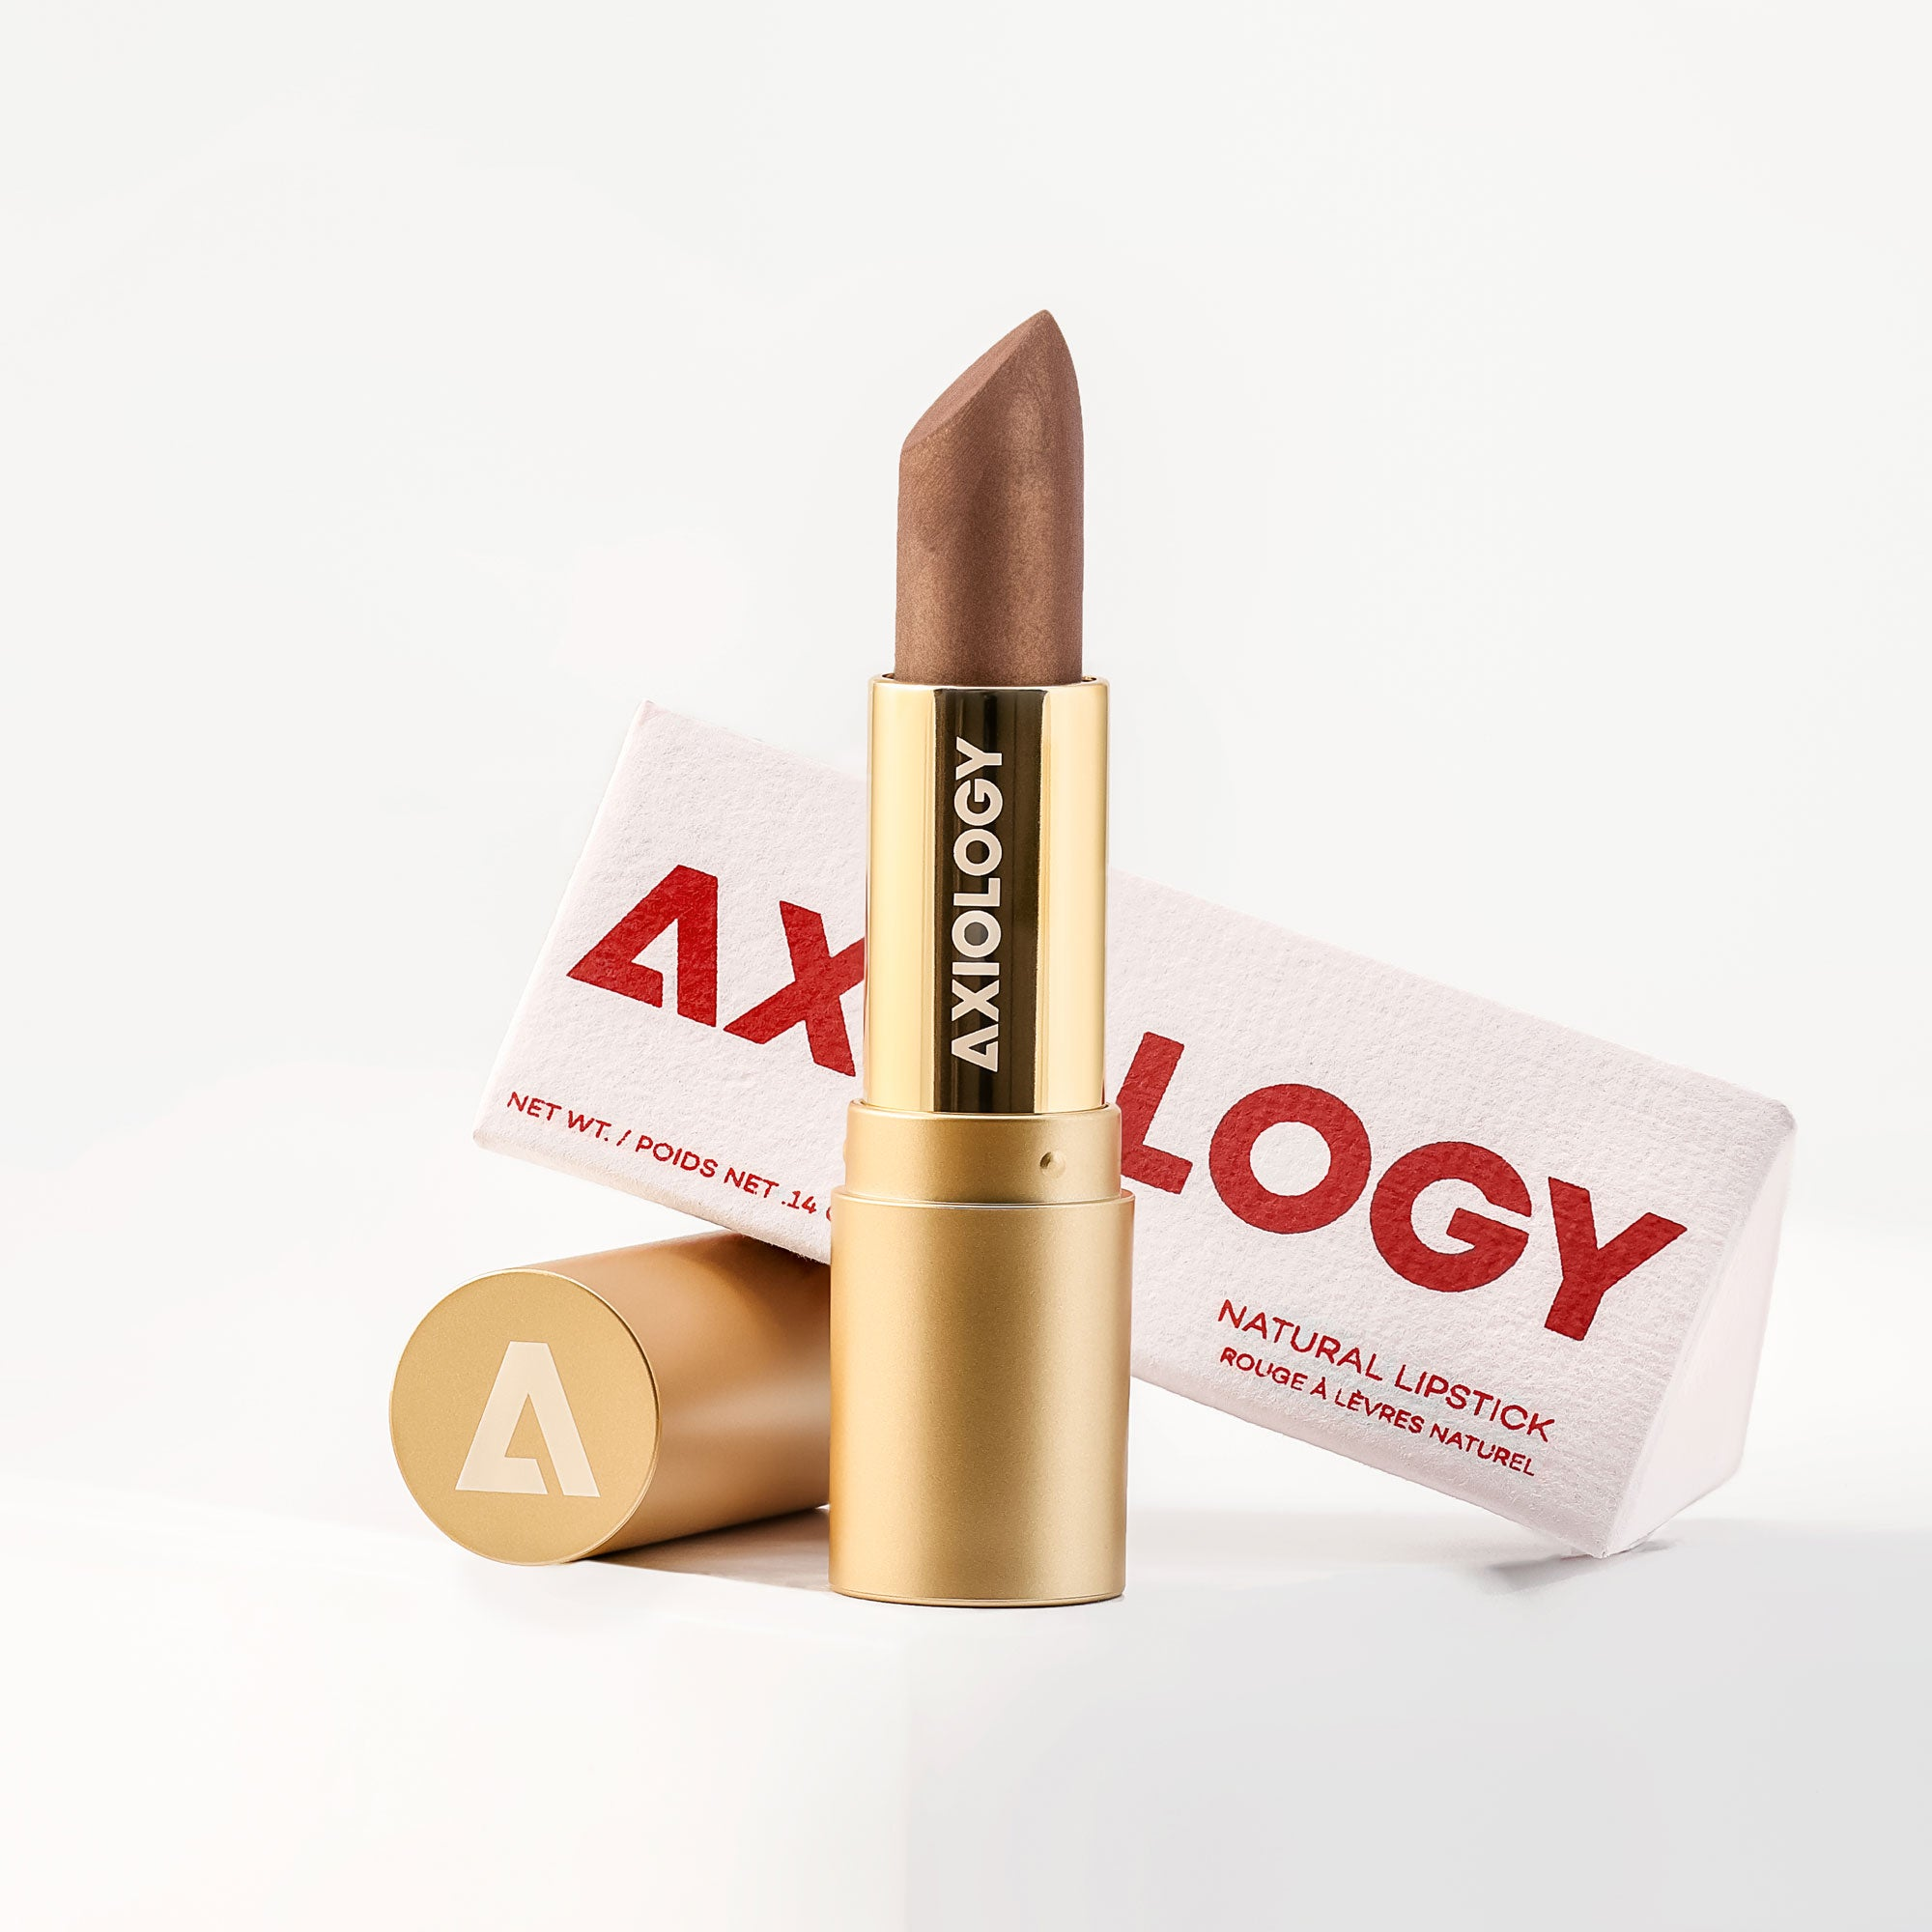 Axiology Beauty DIMENSION 2020